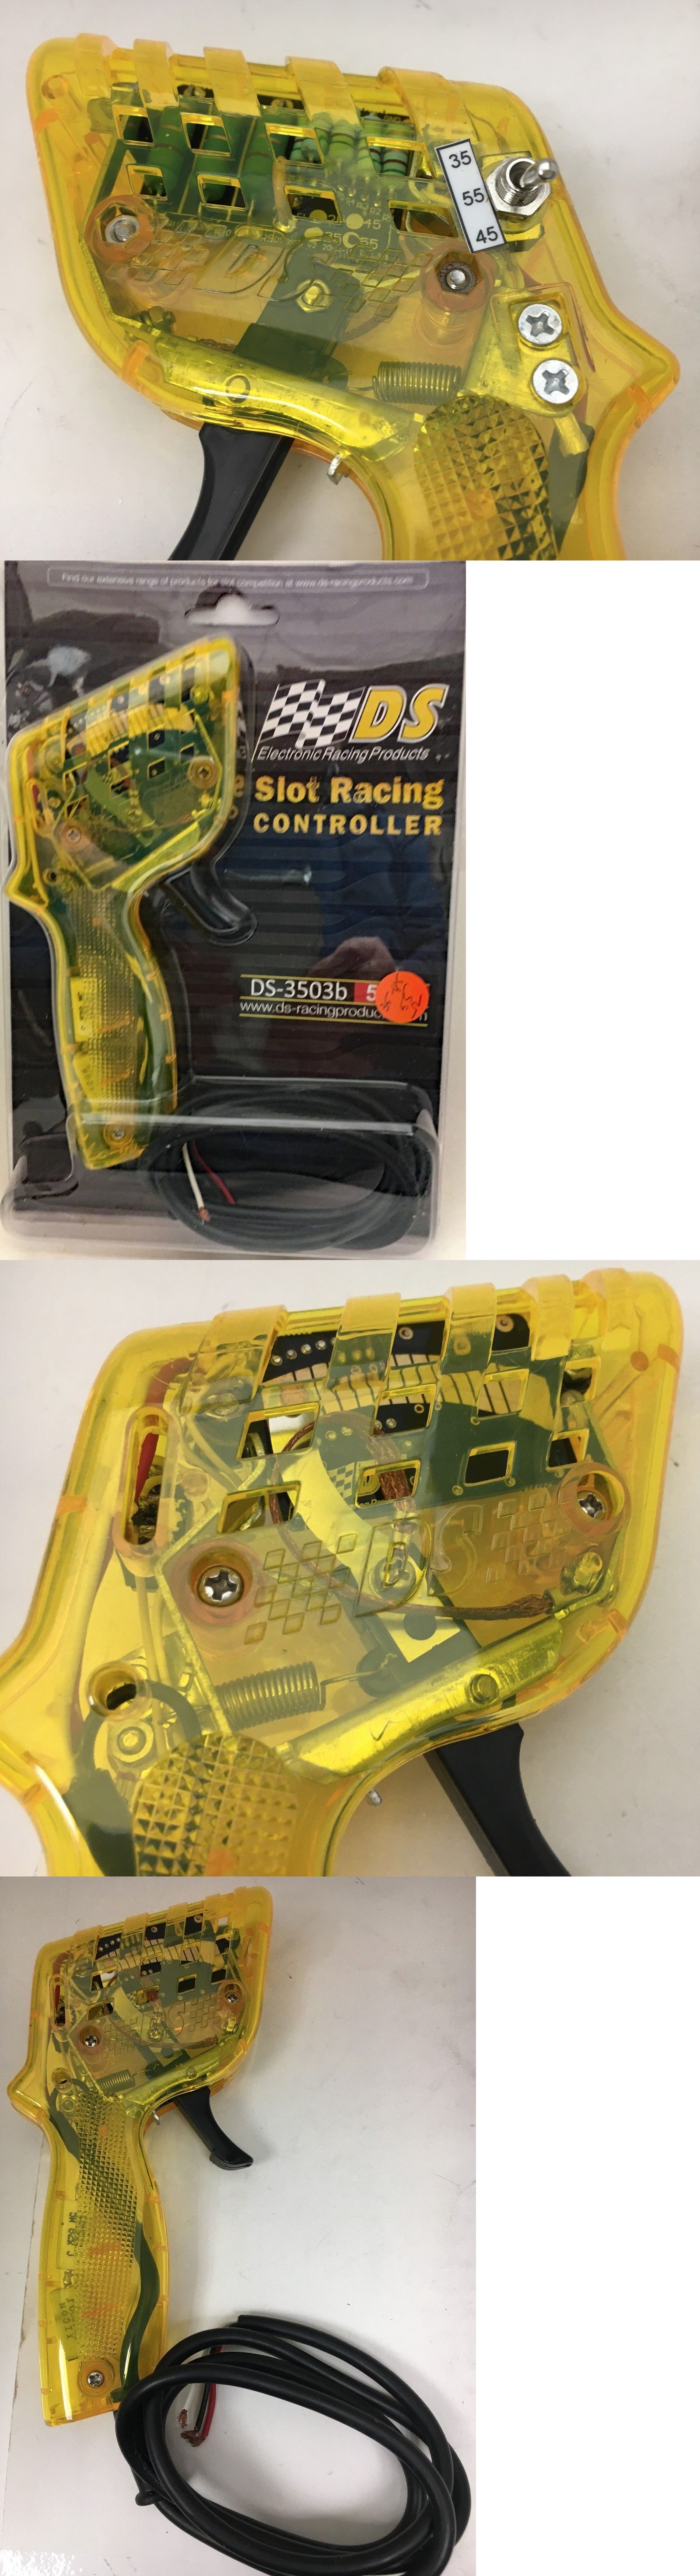 Accessories 164785: Yellow Ho Slot Car Controller By Ds 55